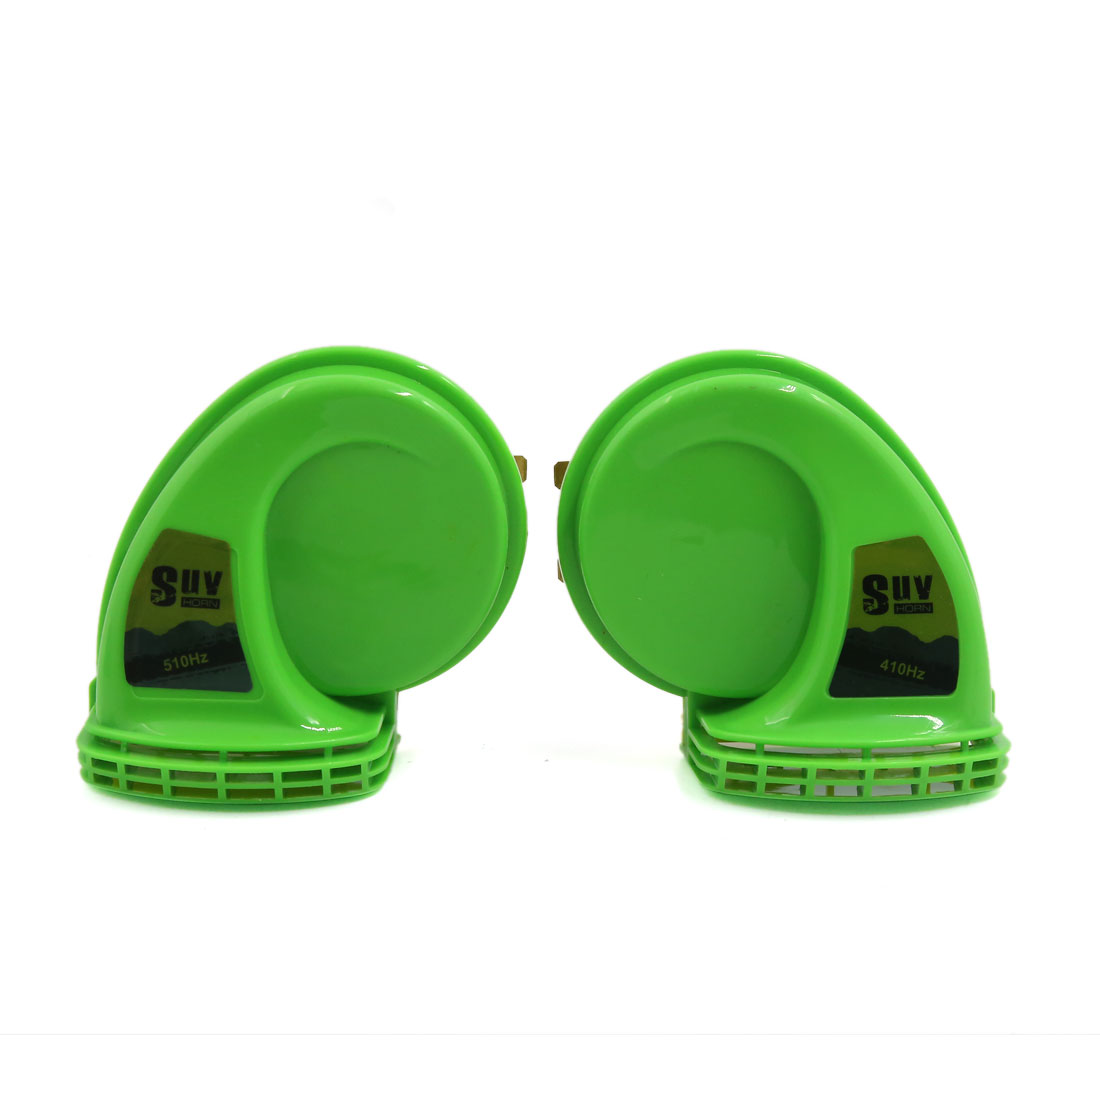 2 Pcs Waterproof Sandproof Super Sound High Low Tone Horn for Car Motorcycle